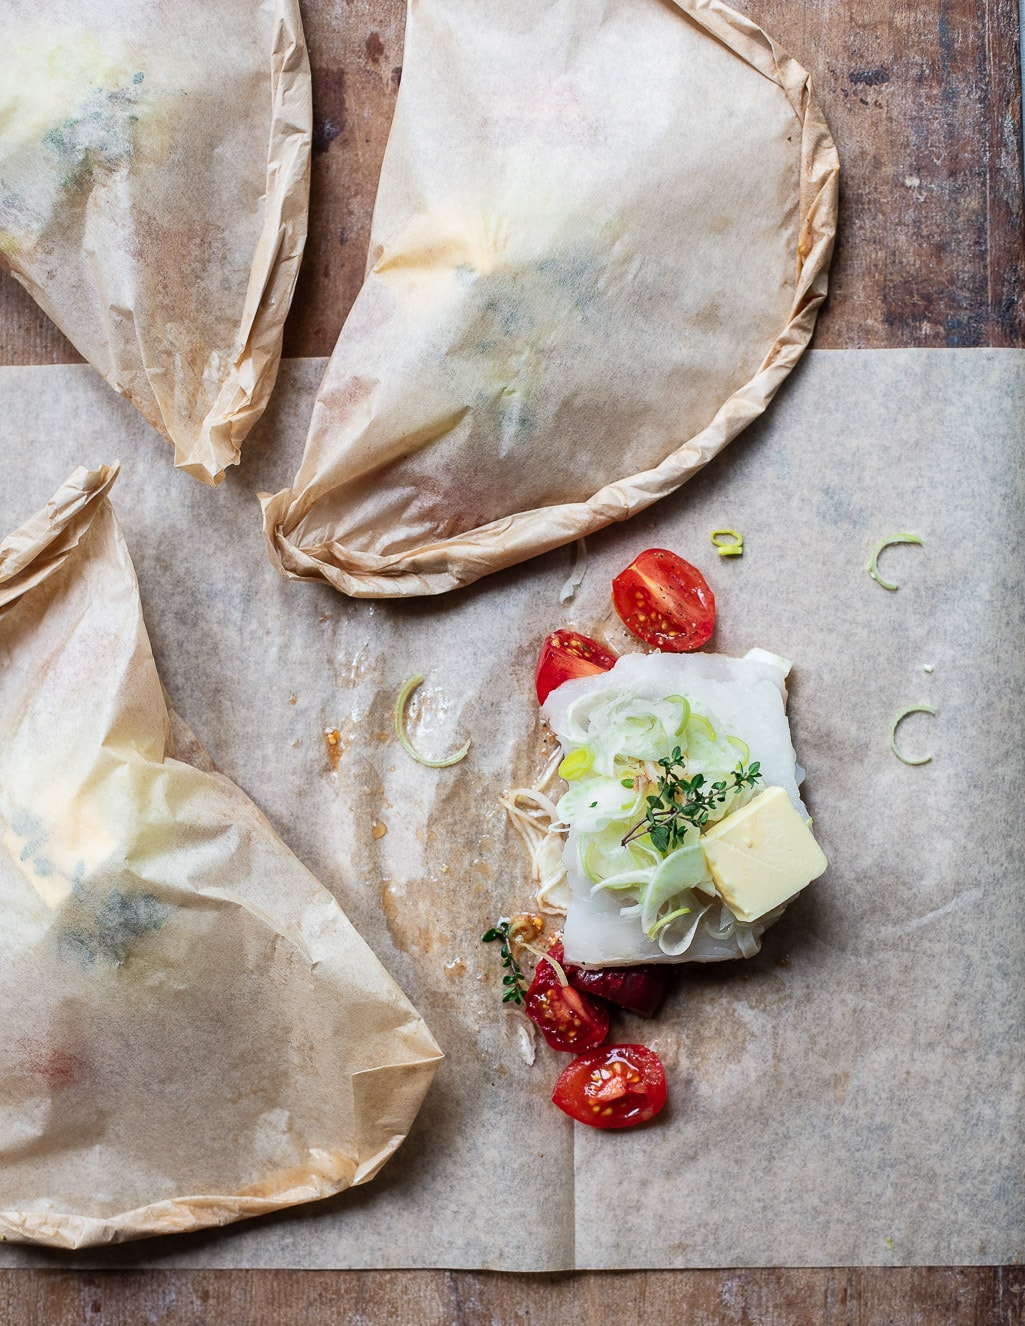 The least fussy and tastiest way to cook fresh fish - Parchment Roasted Cod with Fennel, Tomatoes and Herbs